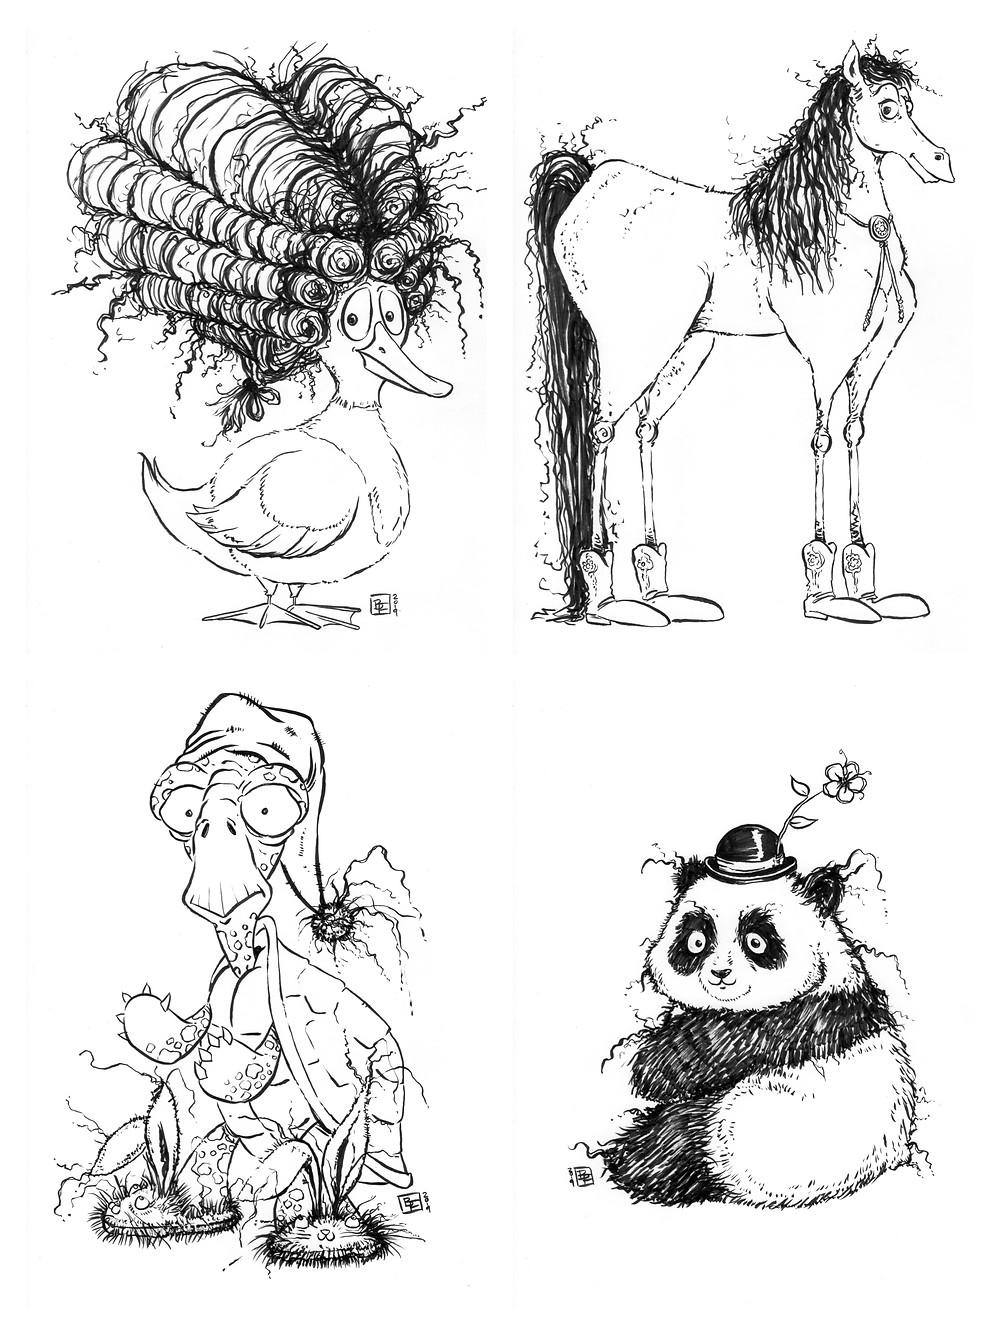 Cute fuzzy happy animal drawings (Duck, Horse, Turtle, Panda) for Inktober - Part 3